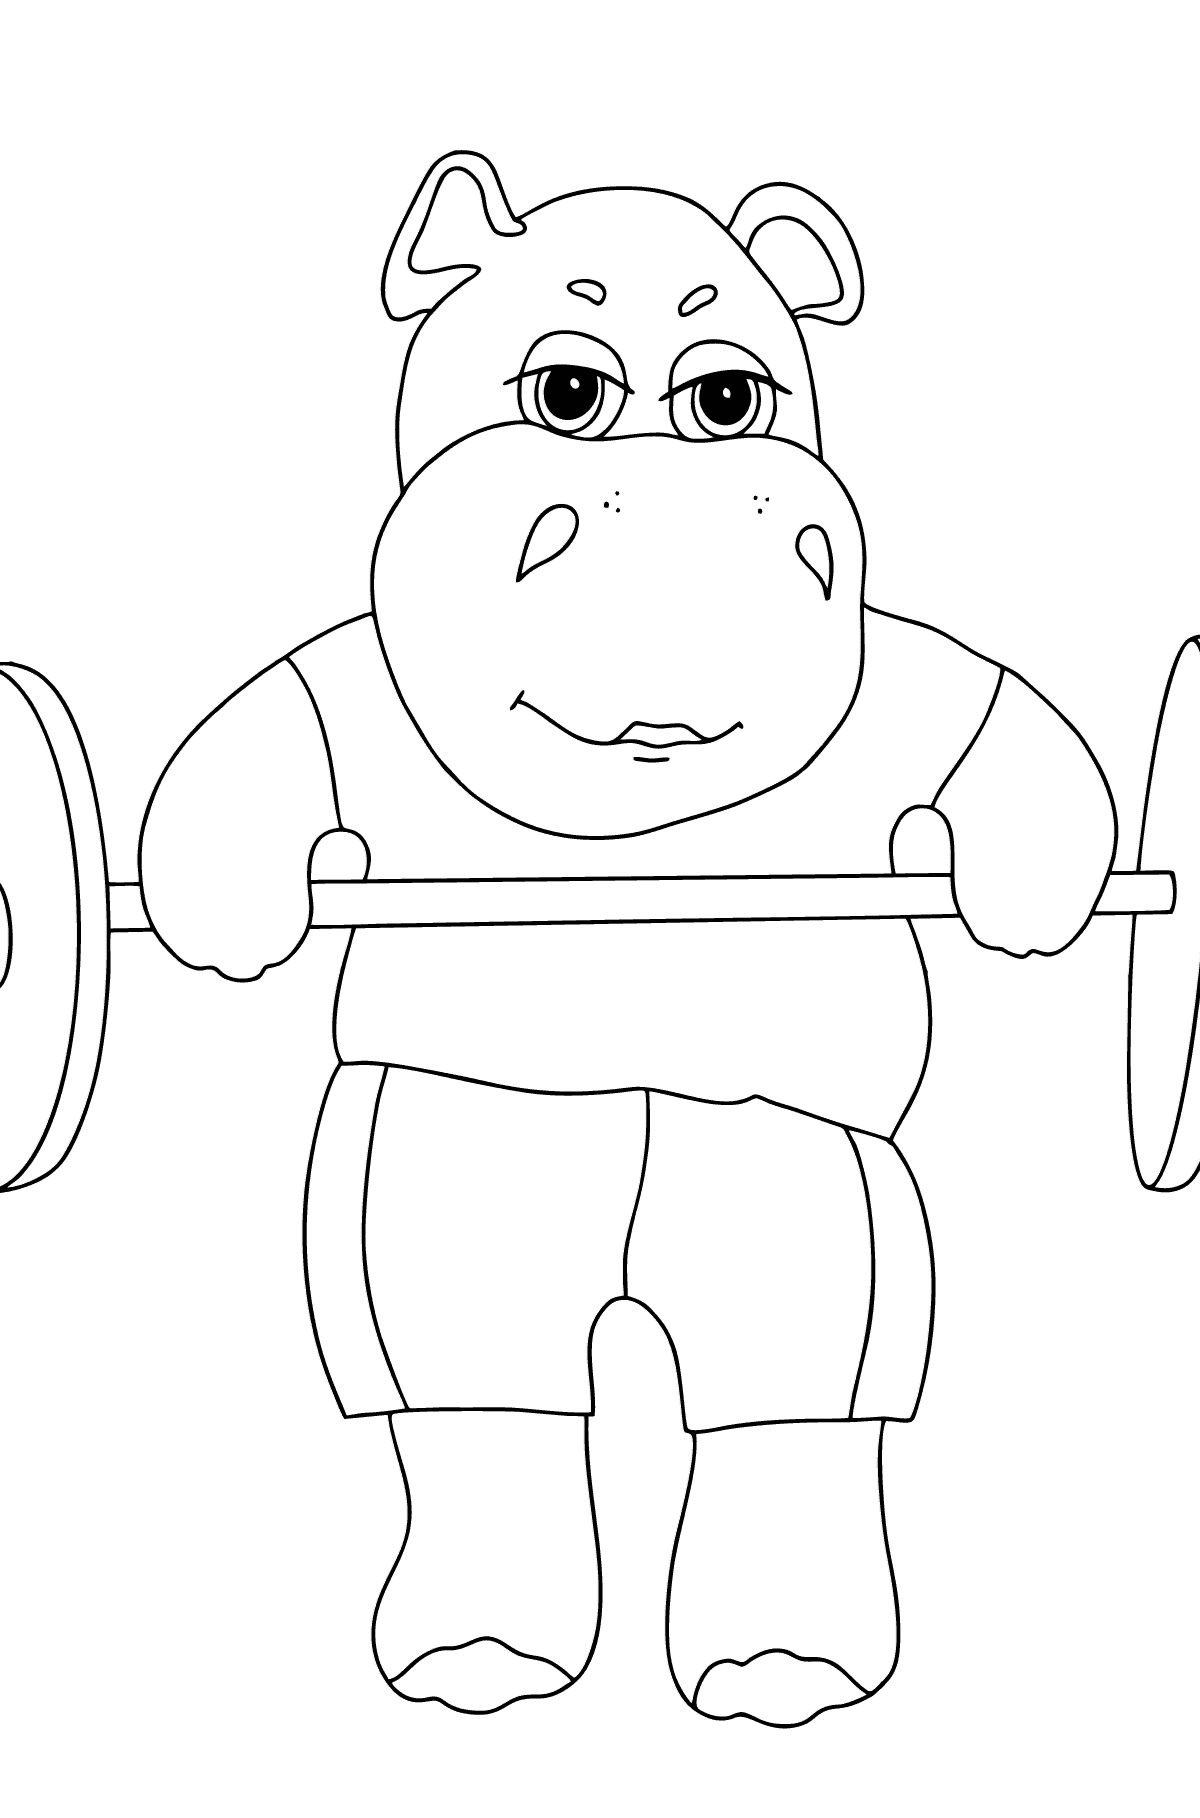 Coloring Page - A Hippo with a Barbell for Children